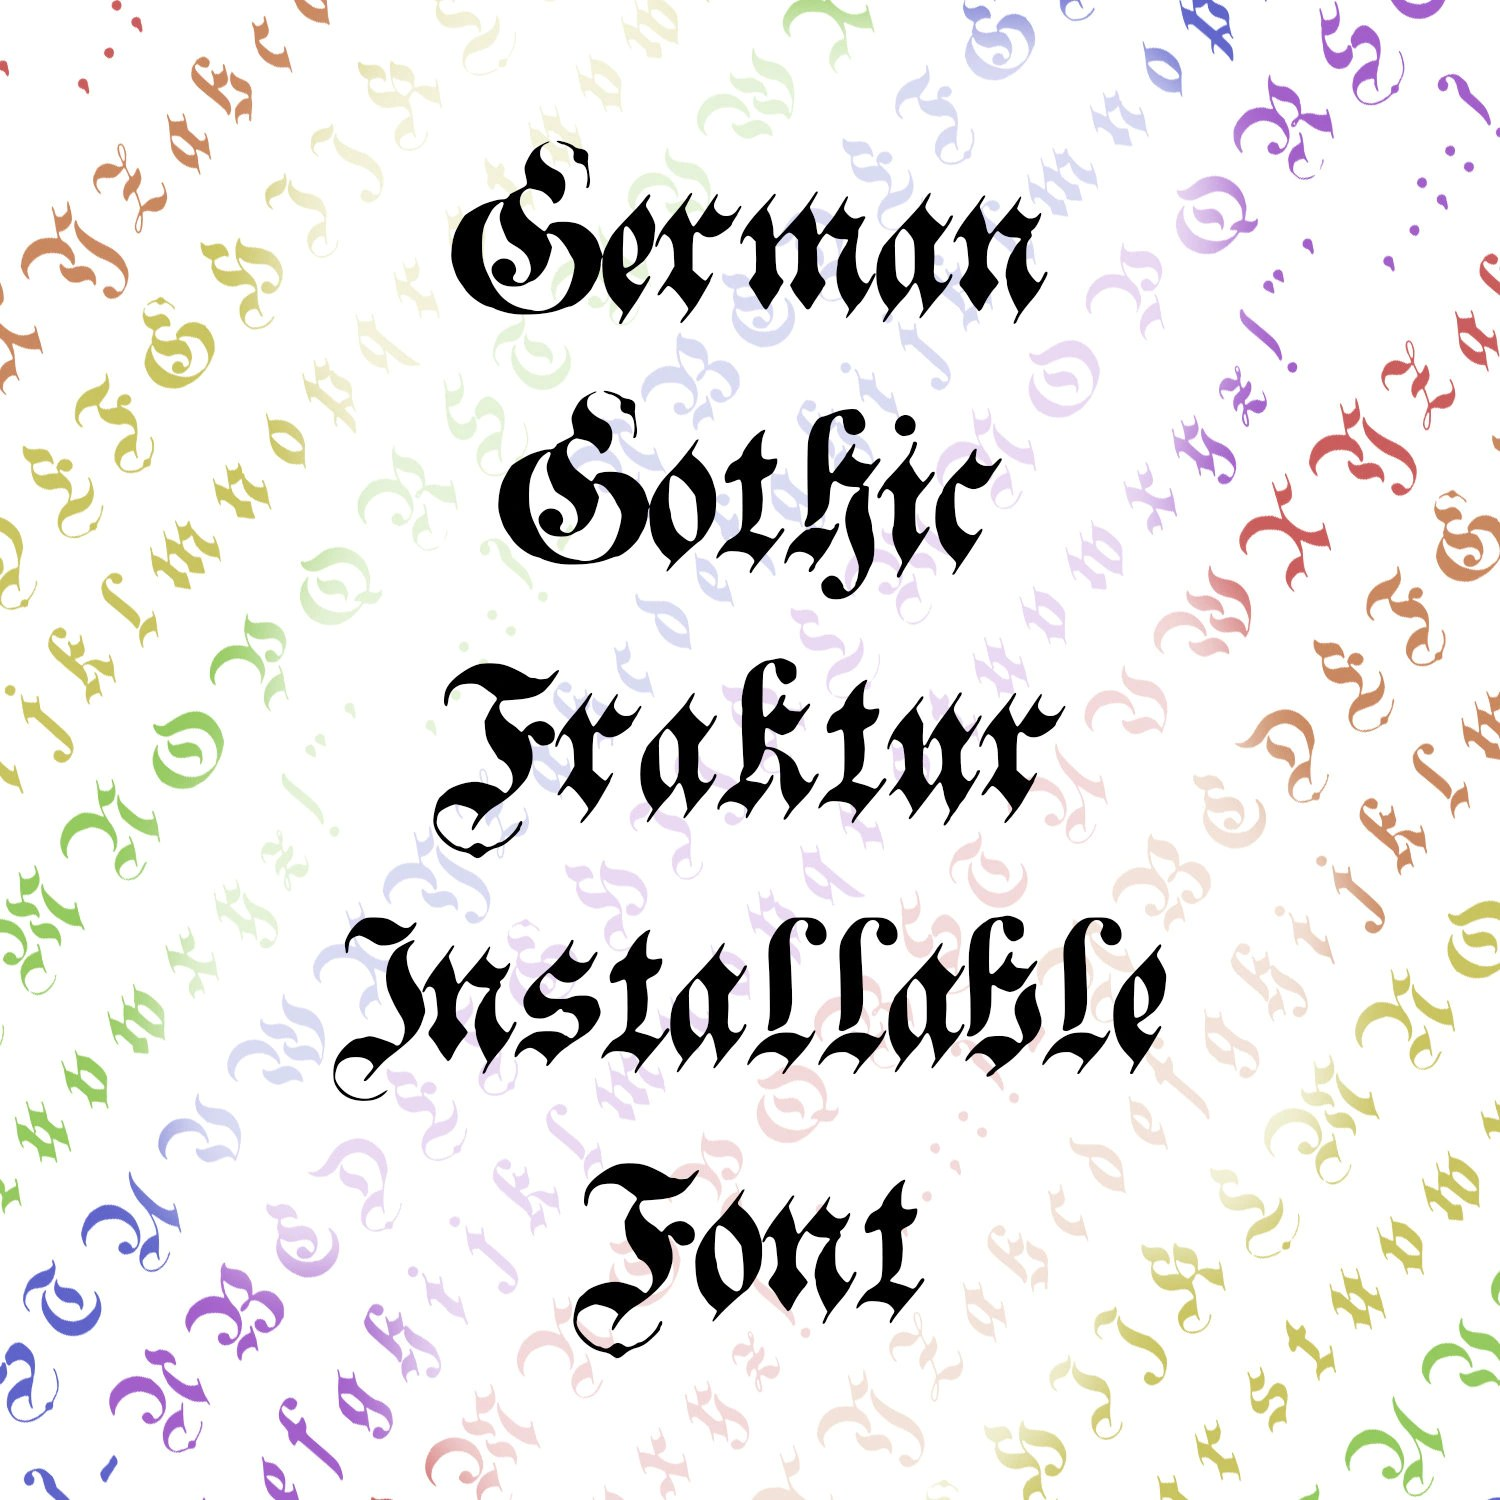 Calligraphy Fonts Victorian Victorian German Gothic Fraktur Installable Font Vintage Hand Drawn Penwork Uppercase Lowercase Letters Punctuation Otf Ttf